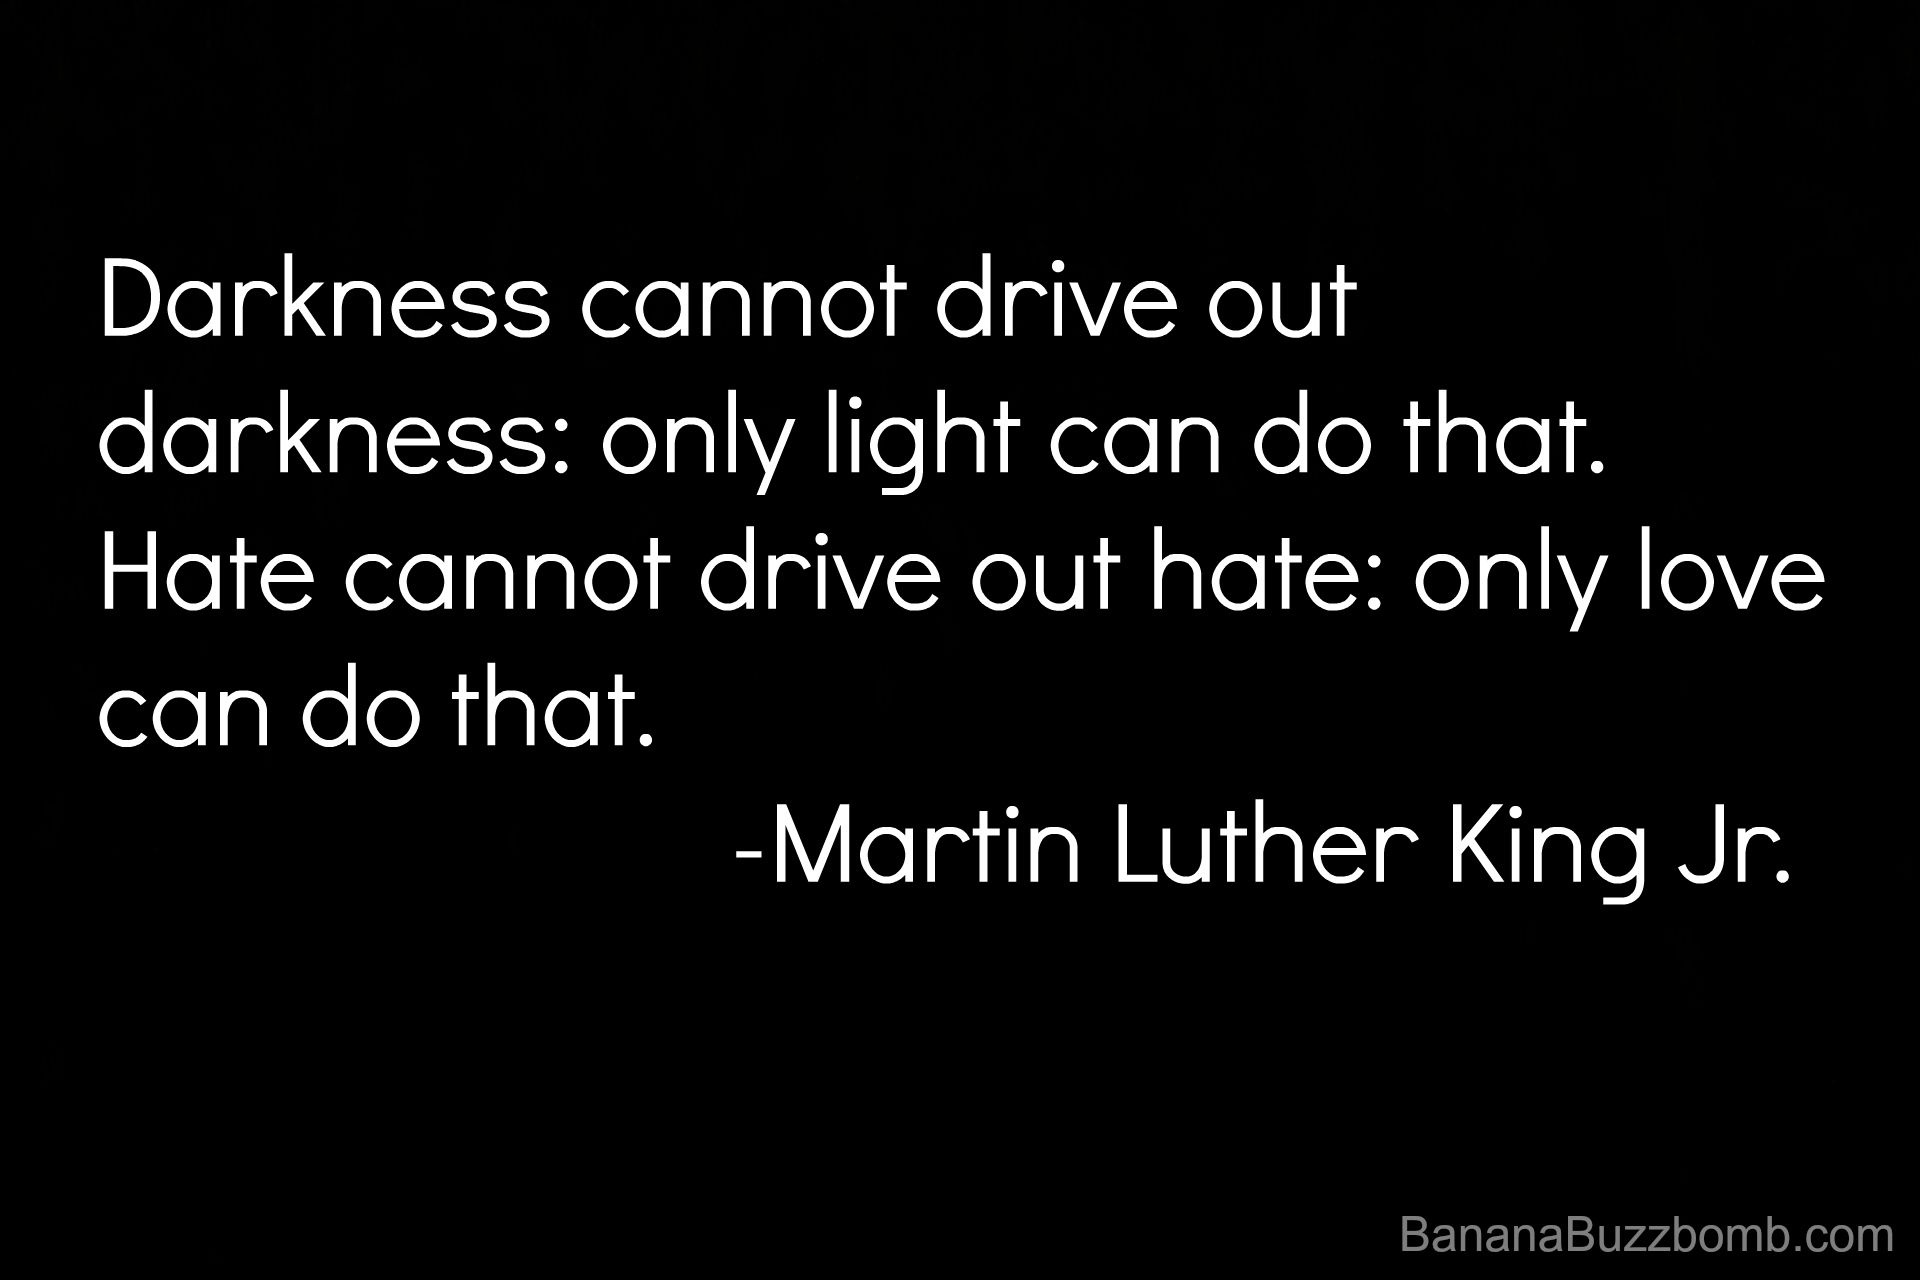 Hate cannot drive out hate only love can do that Martin Luther King Quote